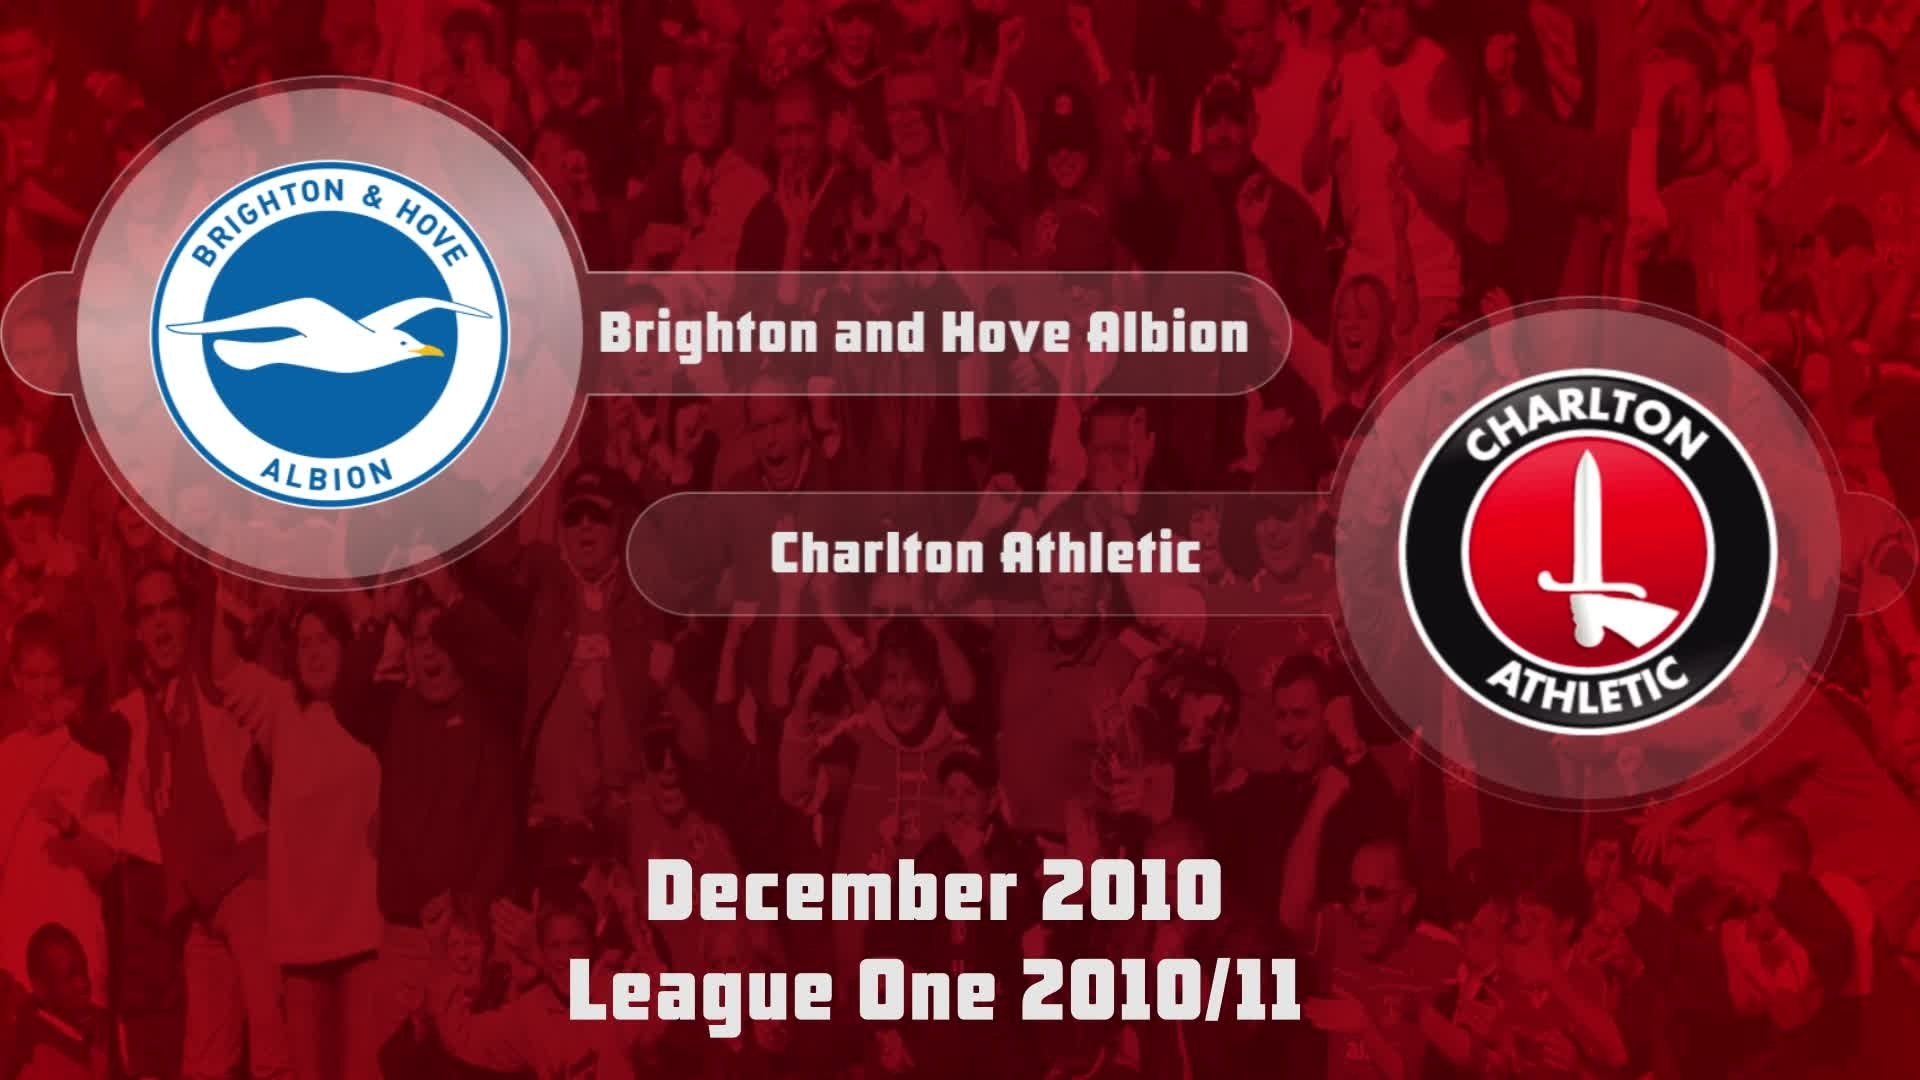 29 HIGHLIGHTS | Brighton and Hove 1 Charlton 1 (Dec 2010)